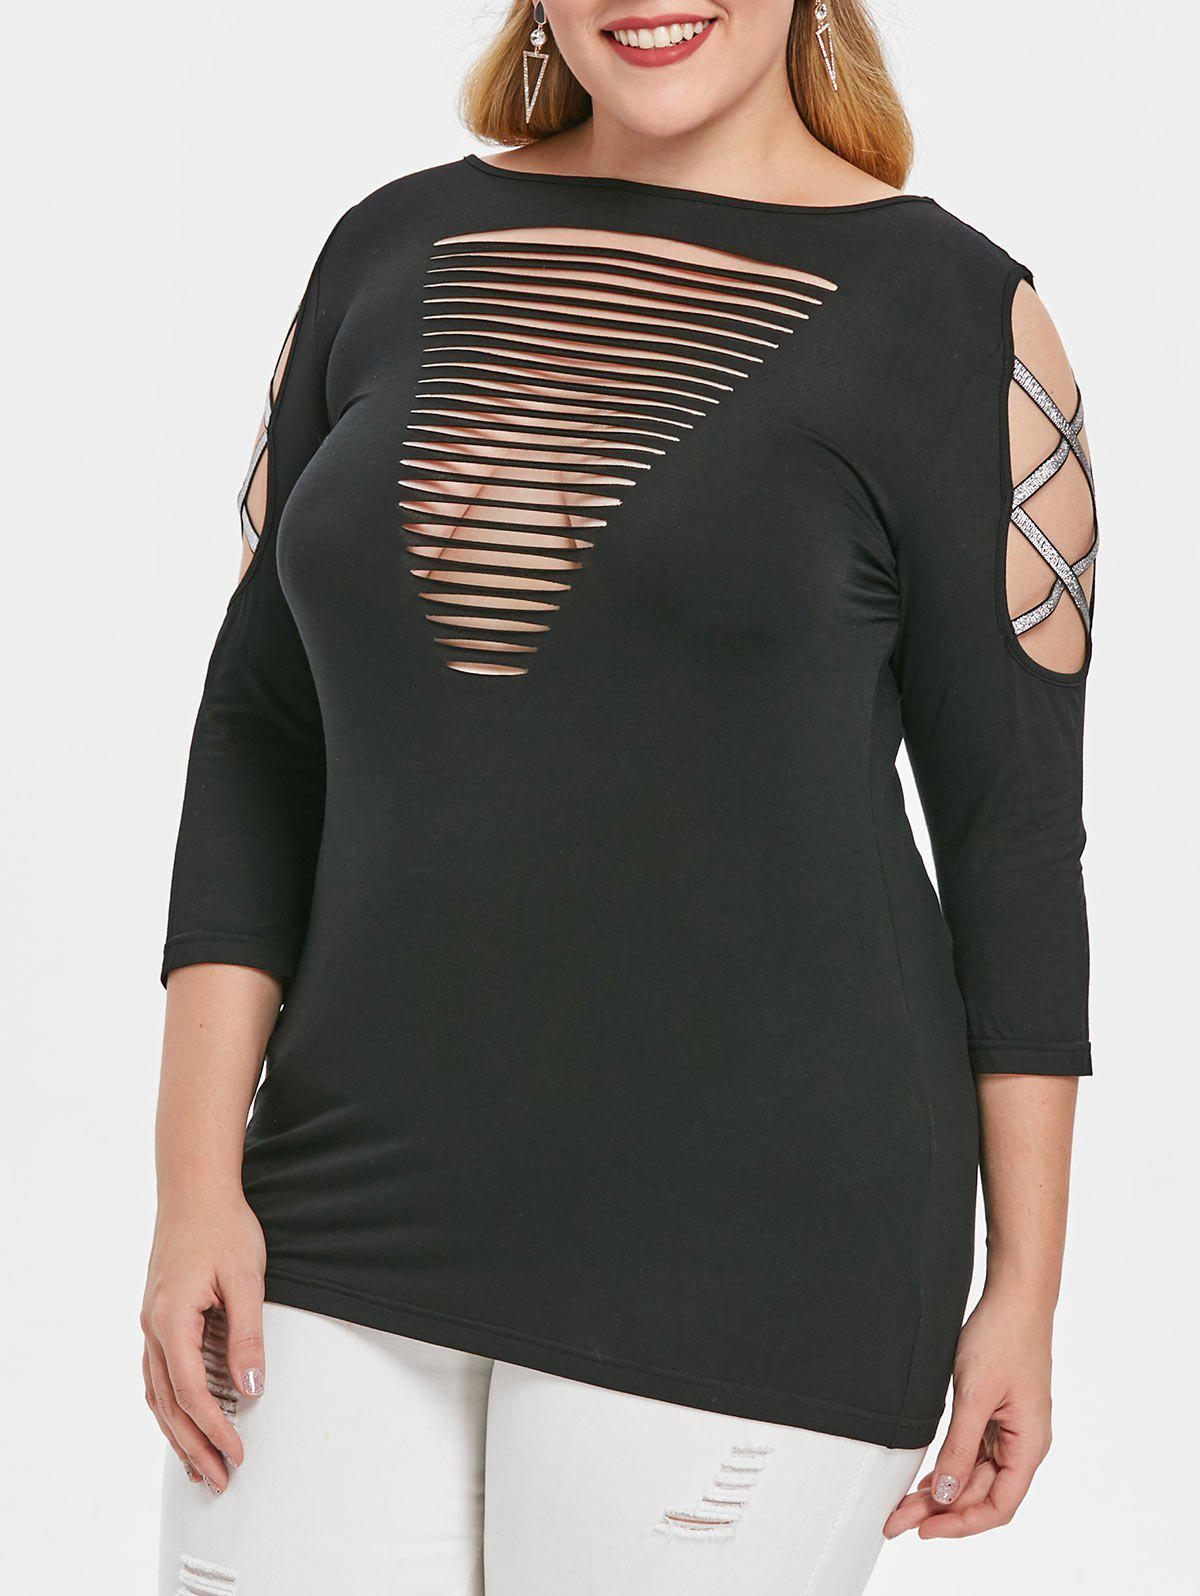 Plus Size Criss Cross Sleeve Cut Out T-shirt